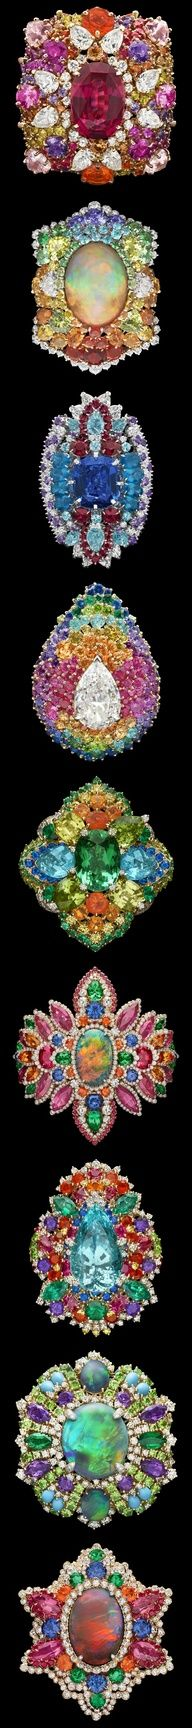 Brooches ♥✤ | Keep the Glamour | BeStayBeautiful